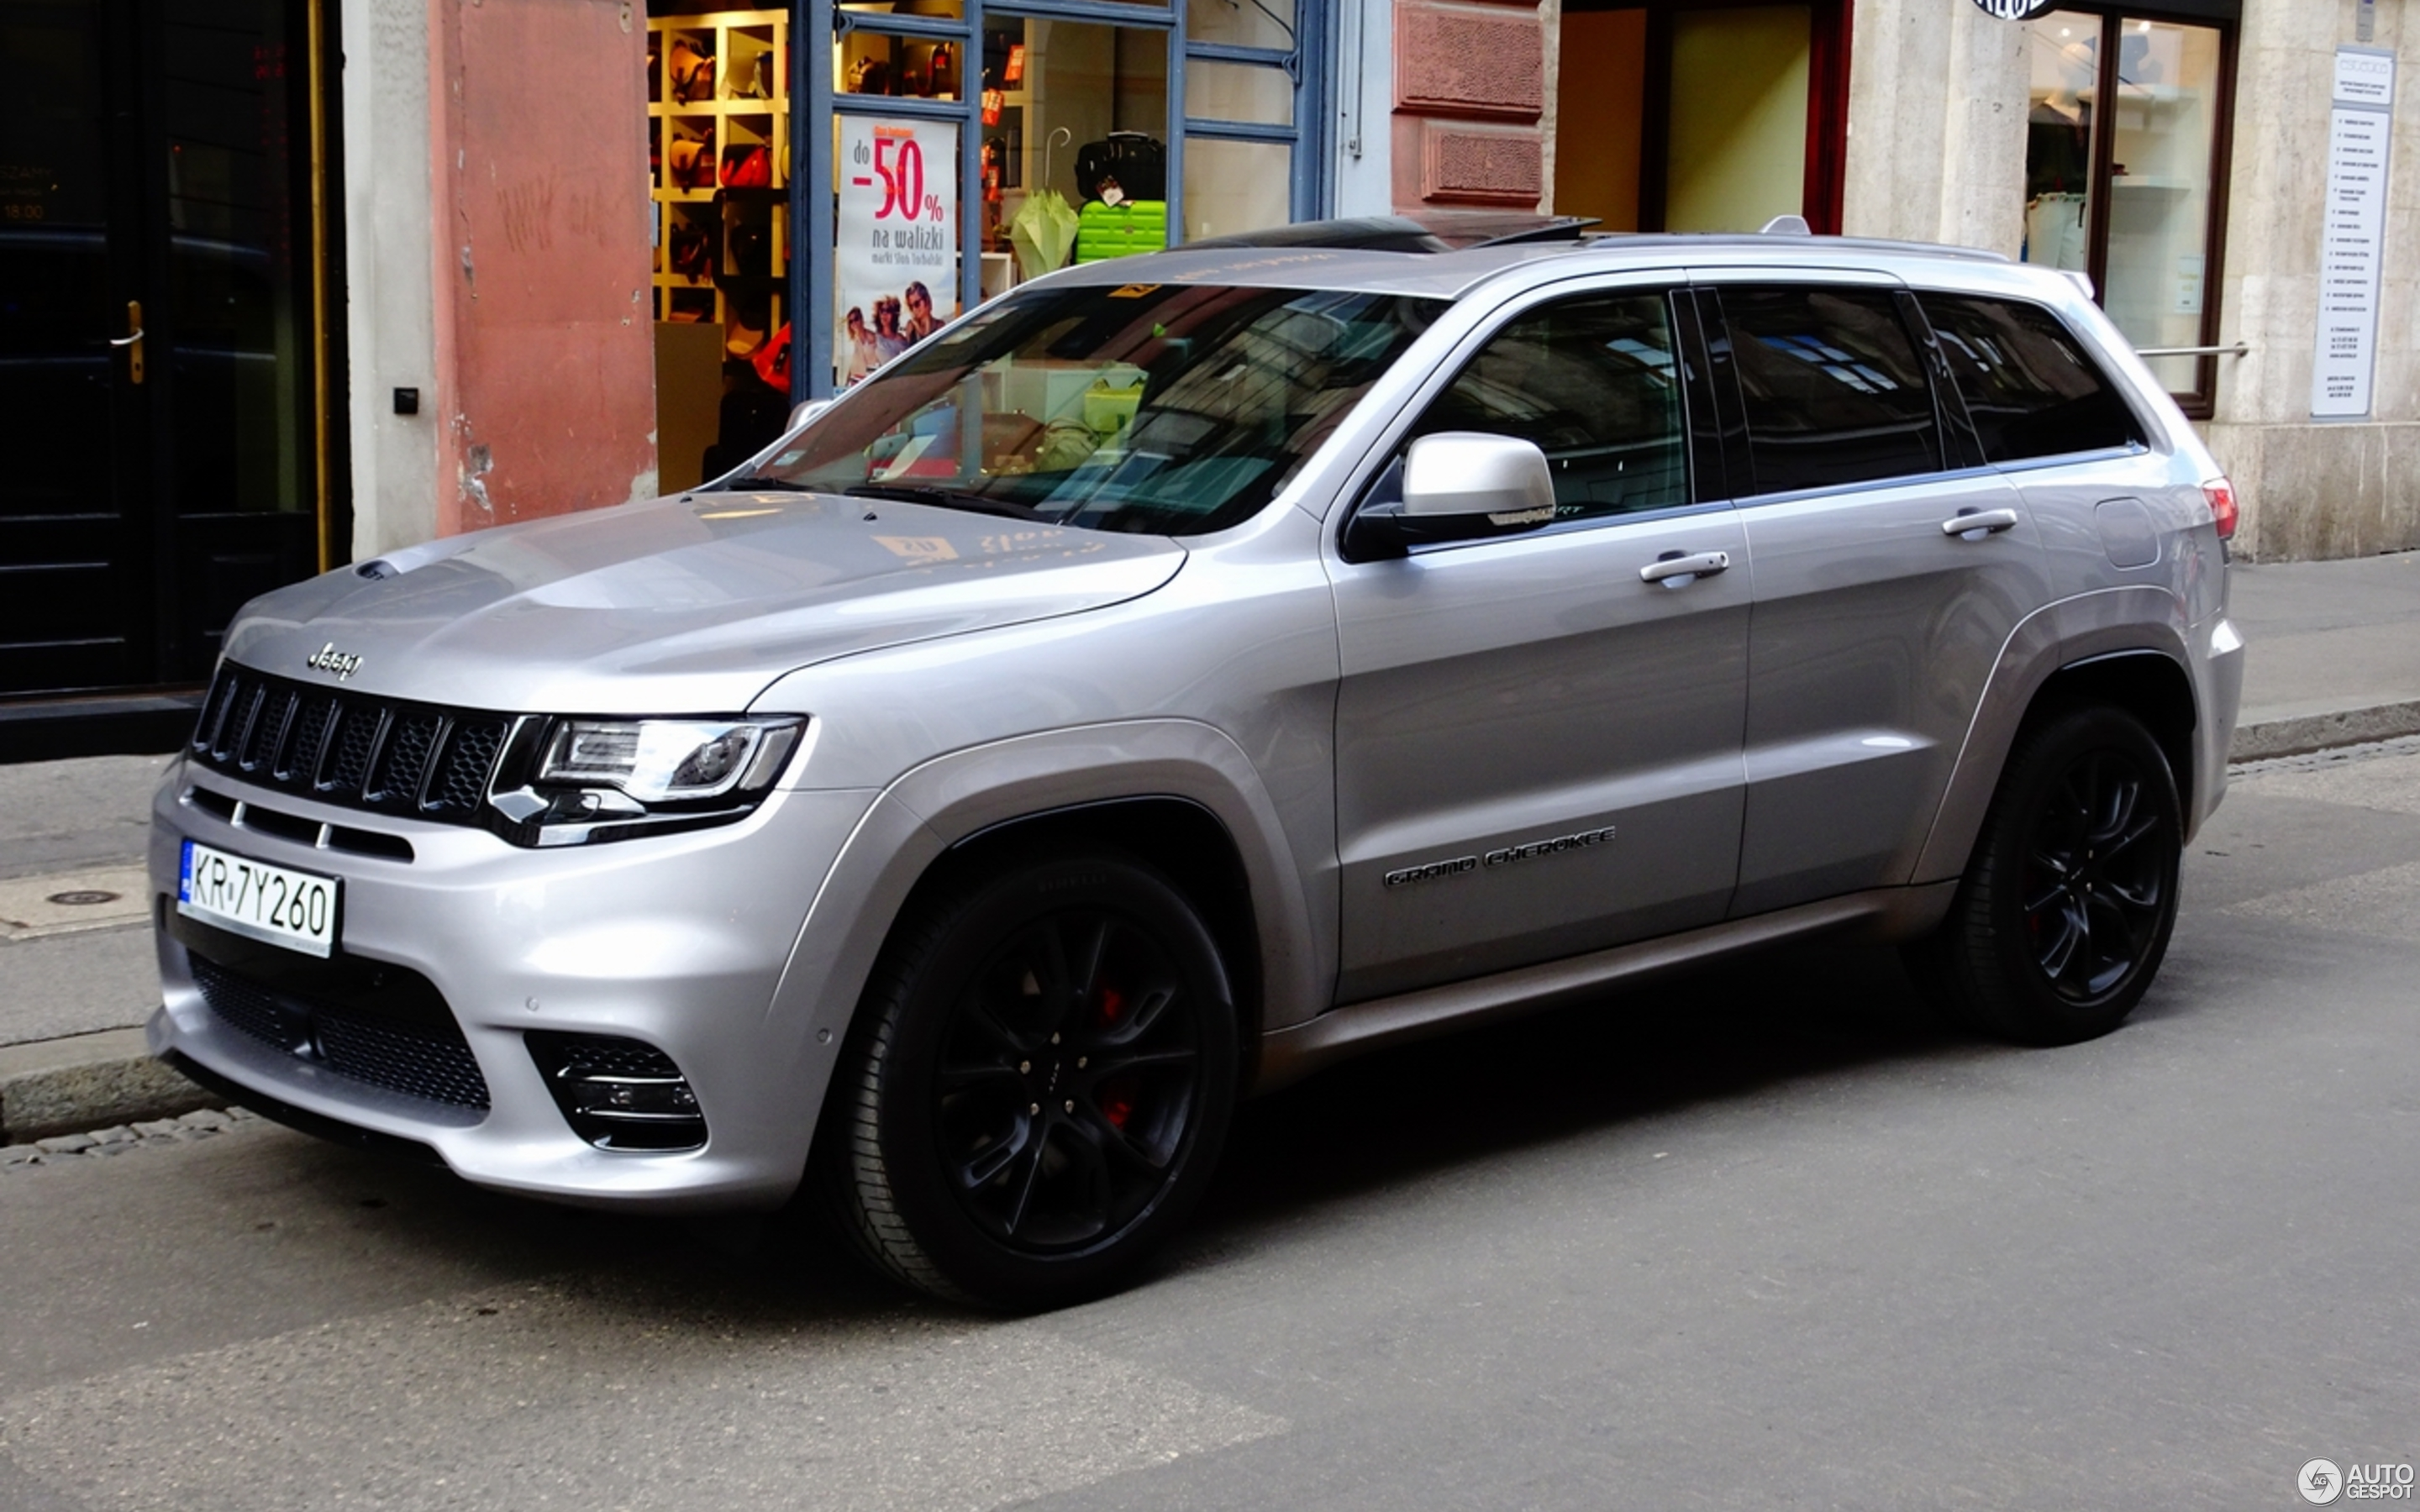 jeep grand cherokee in sprint h to seconds km they time its by affairs name dropped automotive according revisit from srt can a clear level the on